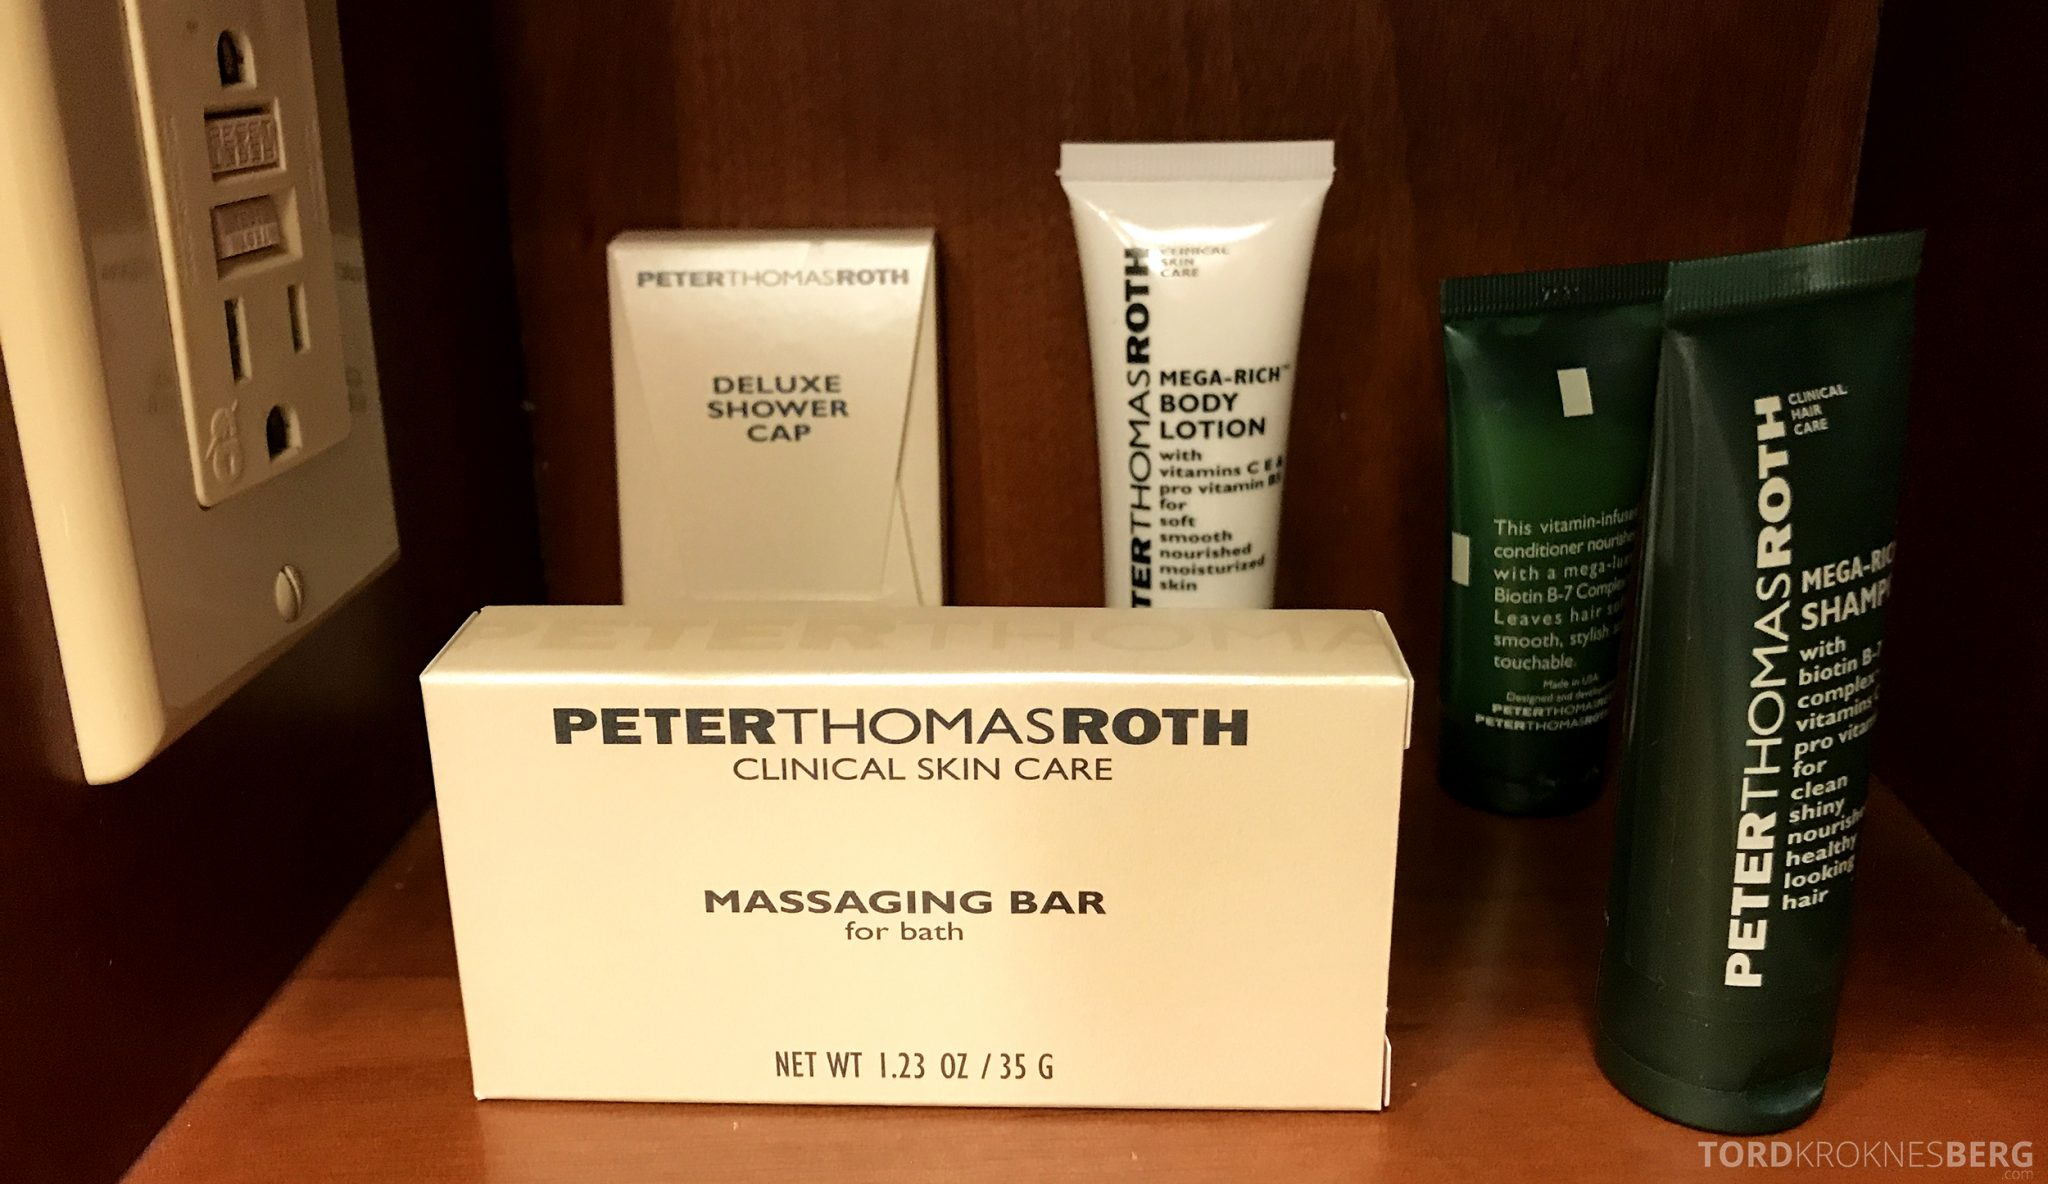 Hilton San Francisco Hotel amenities